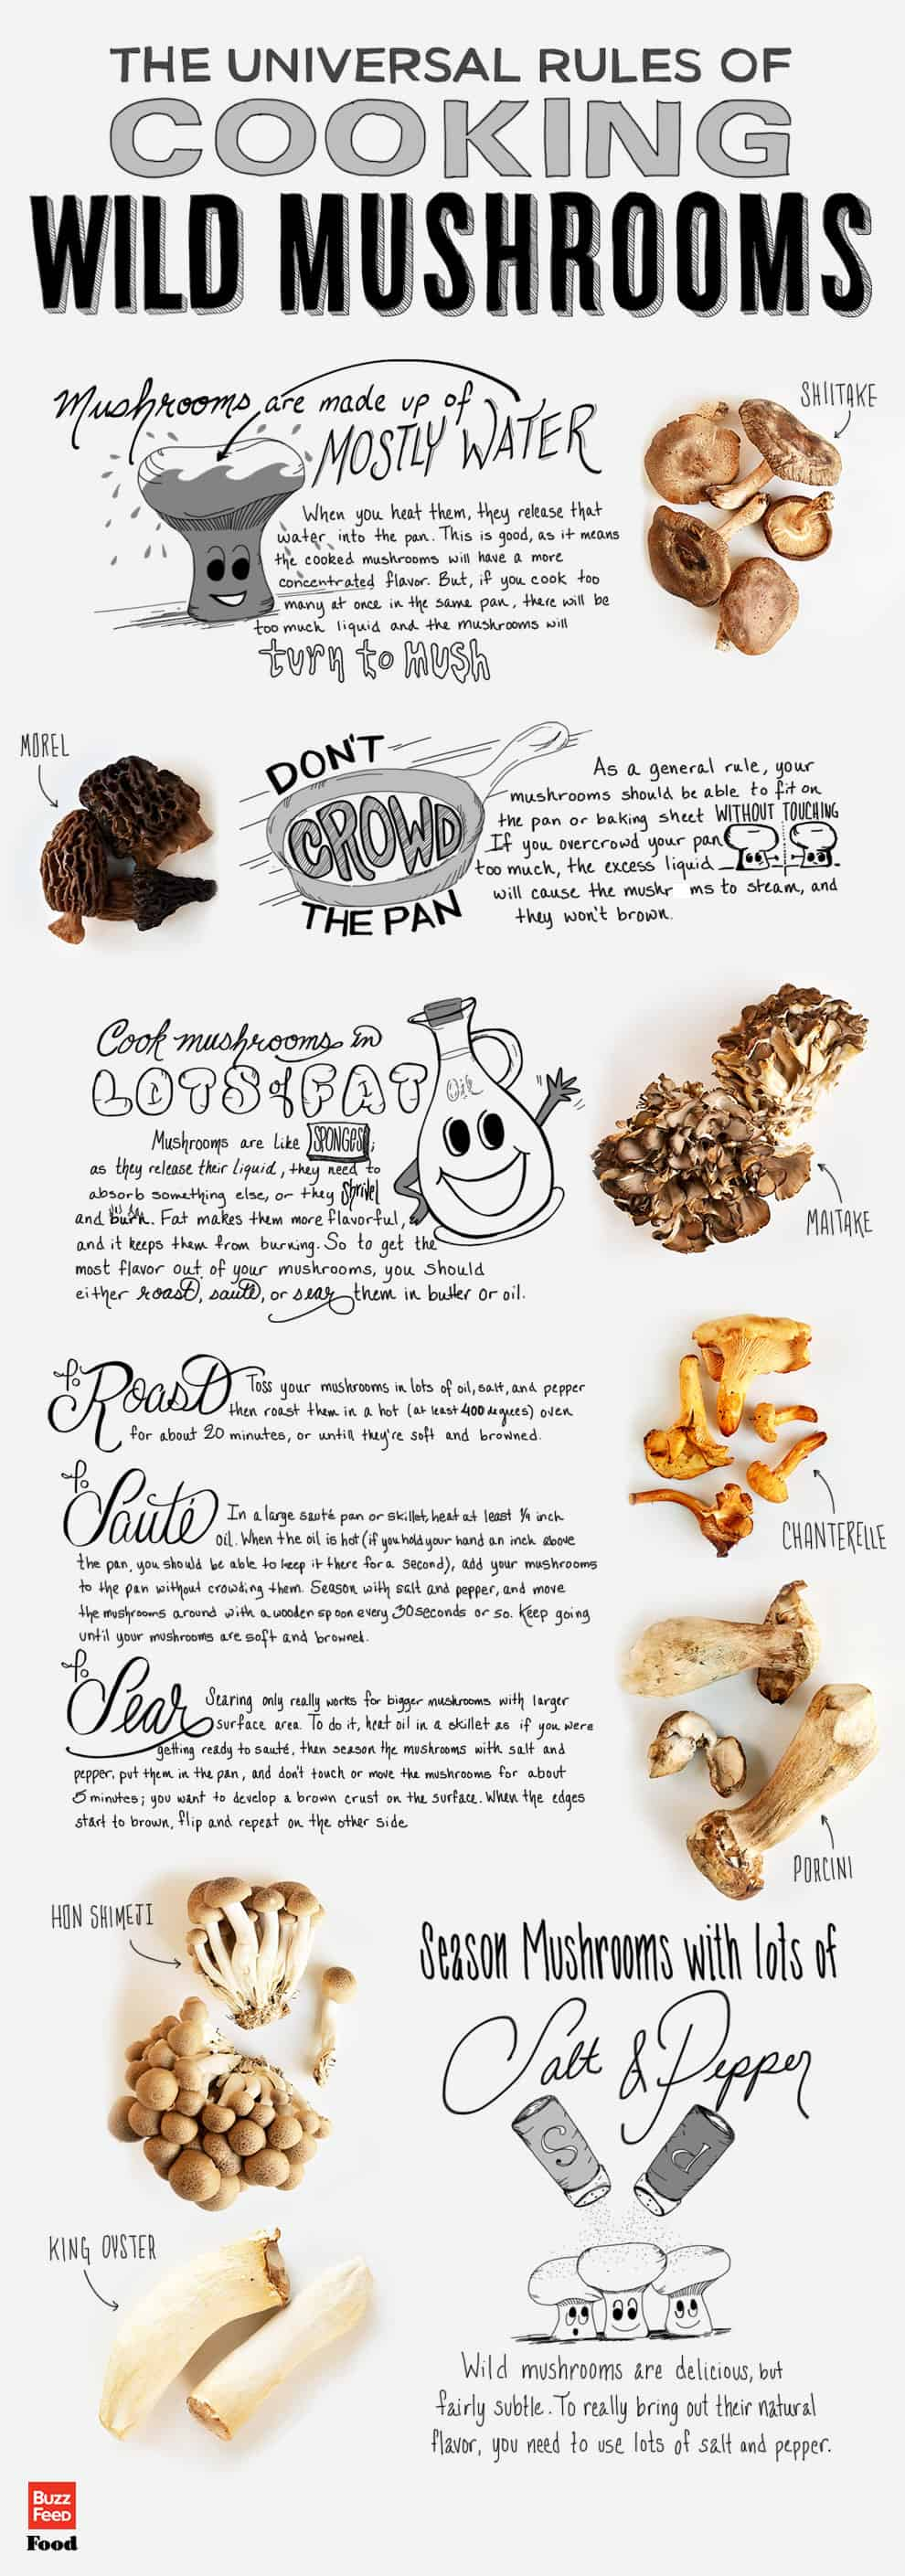 Mushrooms Cooking Advice: How To Cook Wild Mushrooms